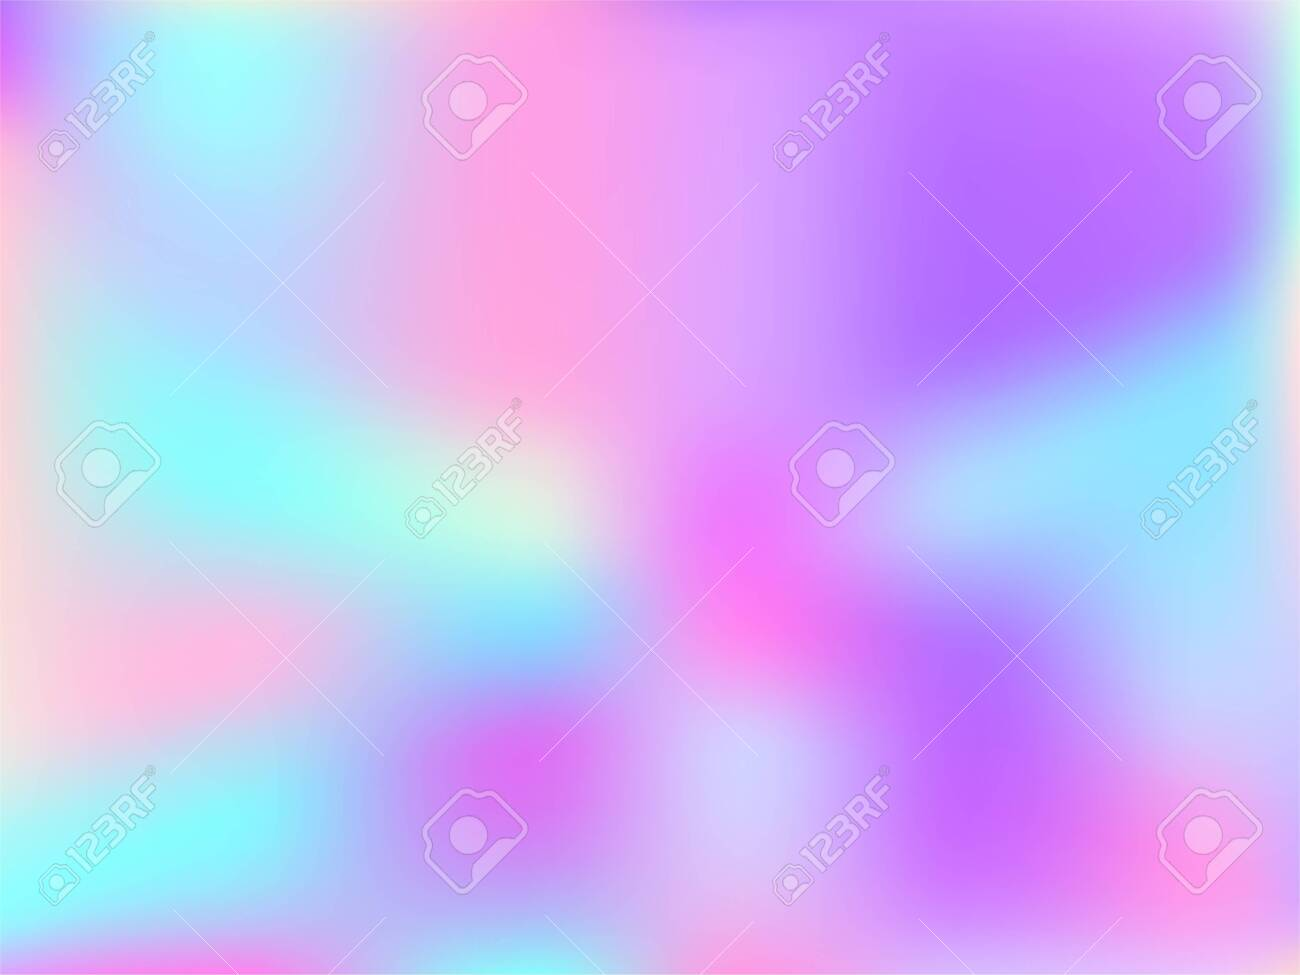 Blurred Hologram Texture Gradient Wallpaper Trendy Iridescent Royalty Free Cliparts Vectors And Stock Illustration Image 140888813